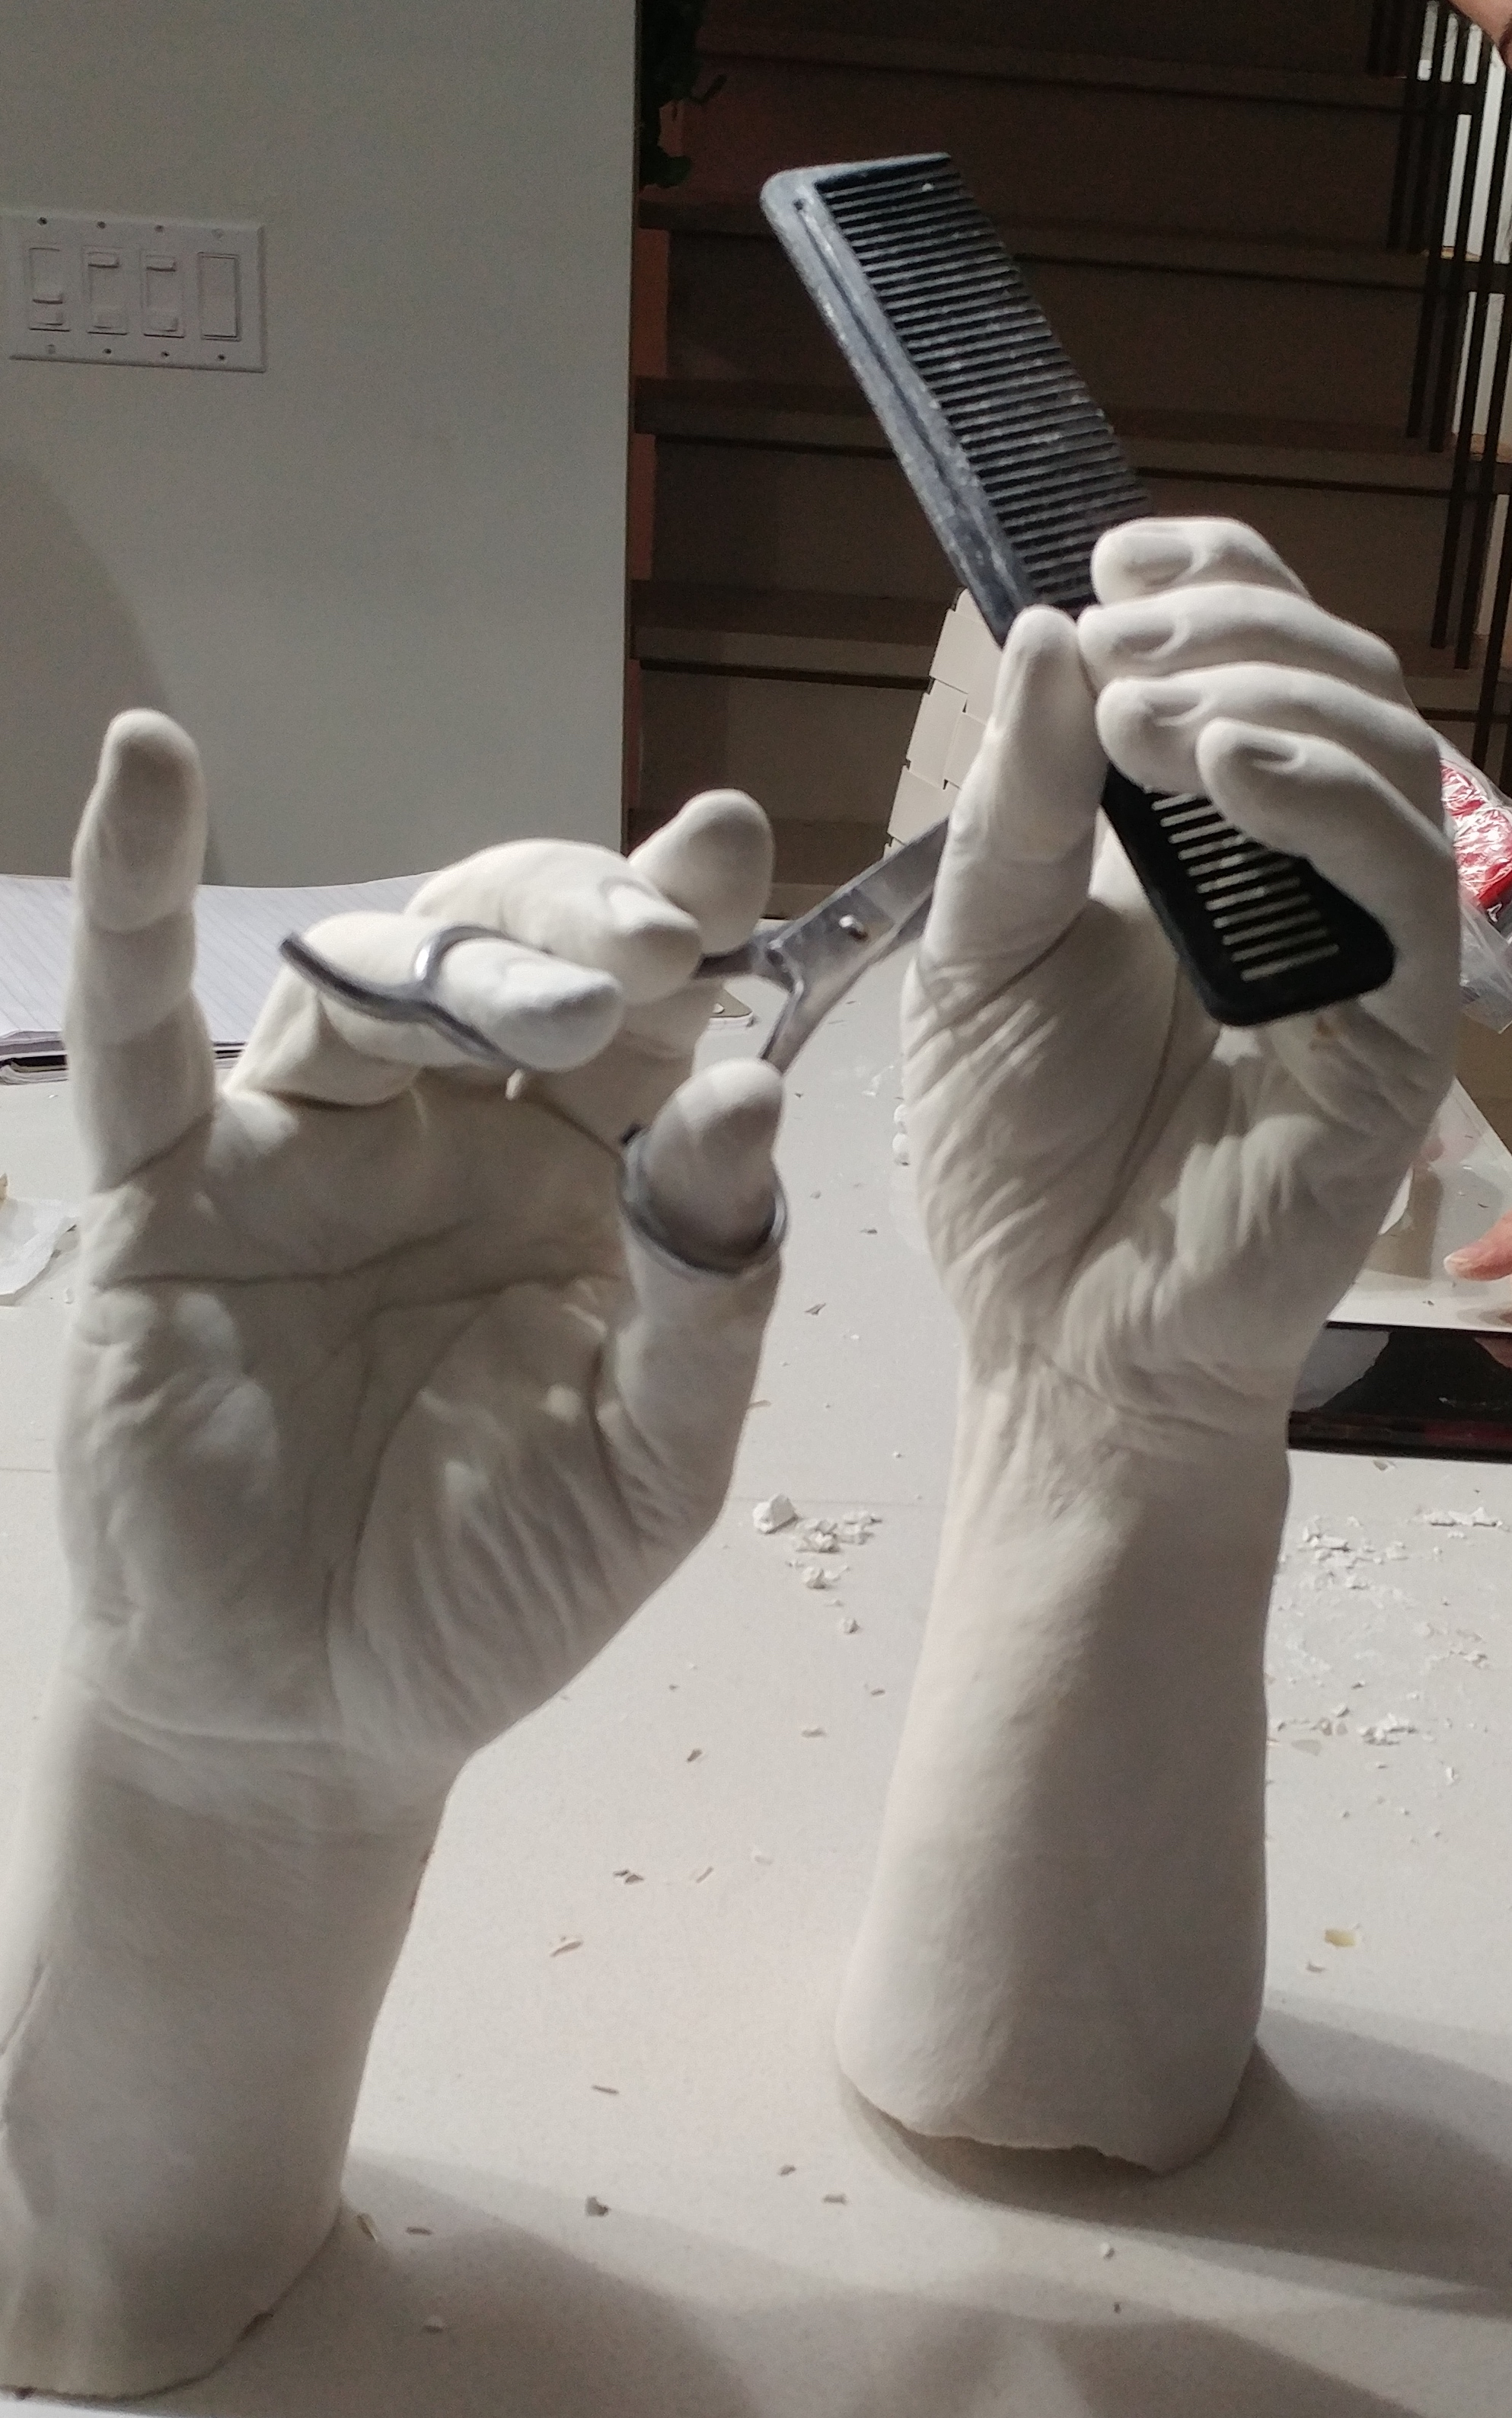 Barber hand casting BY LCSA